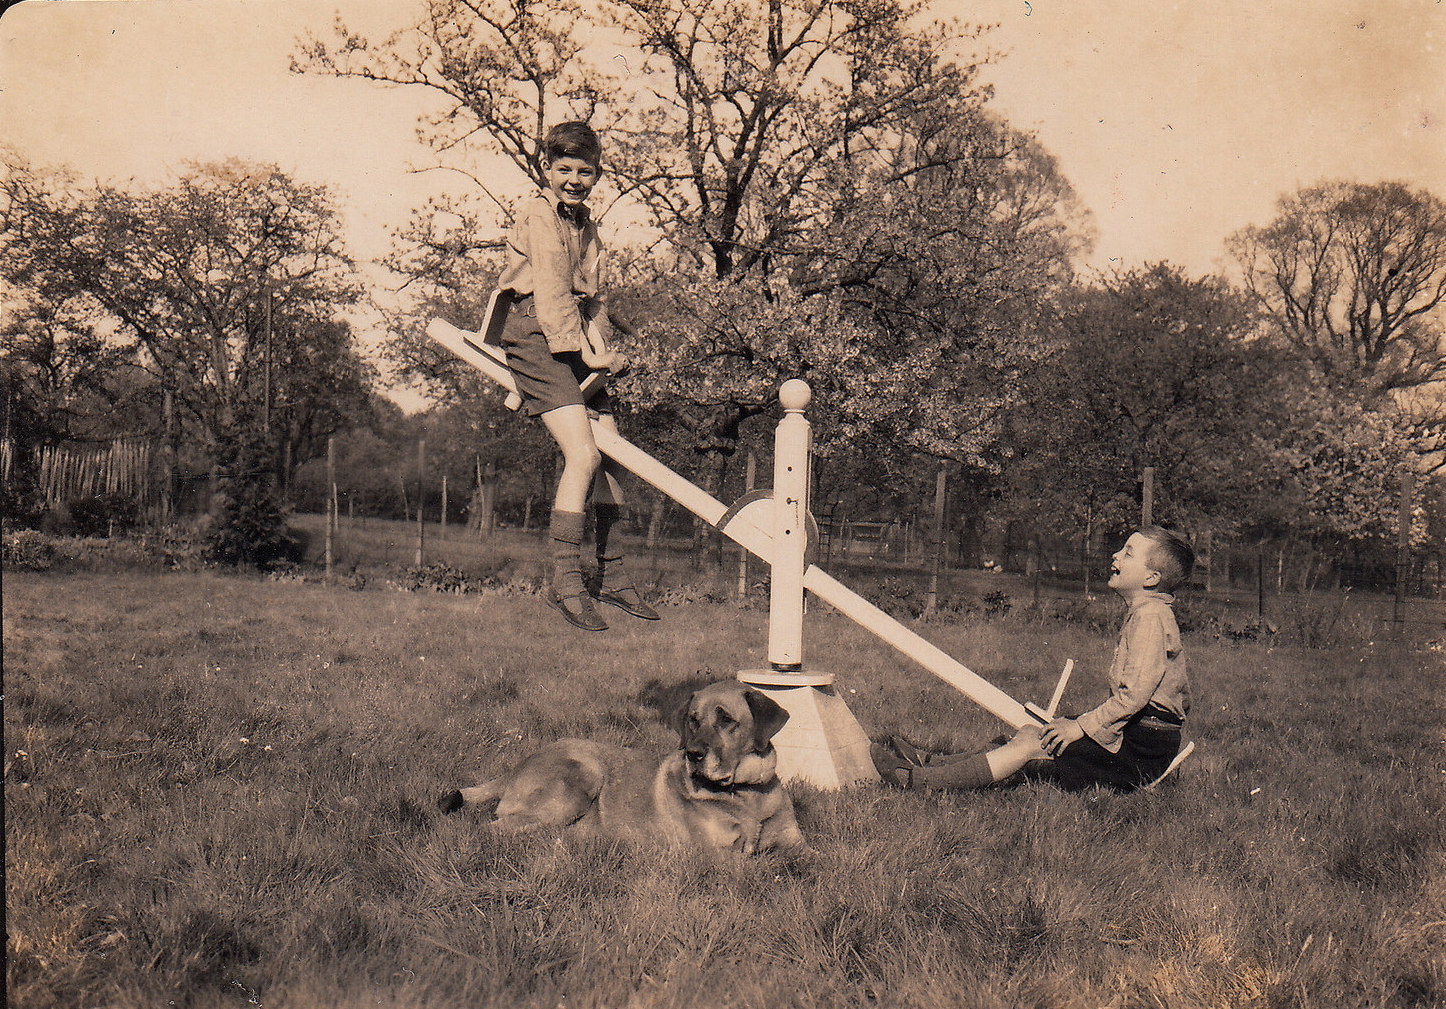 hight resolution of image result for 1940s seesaw